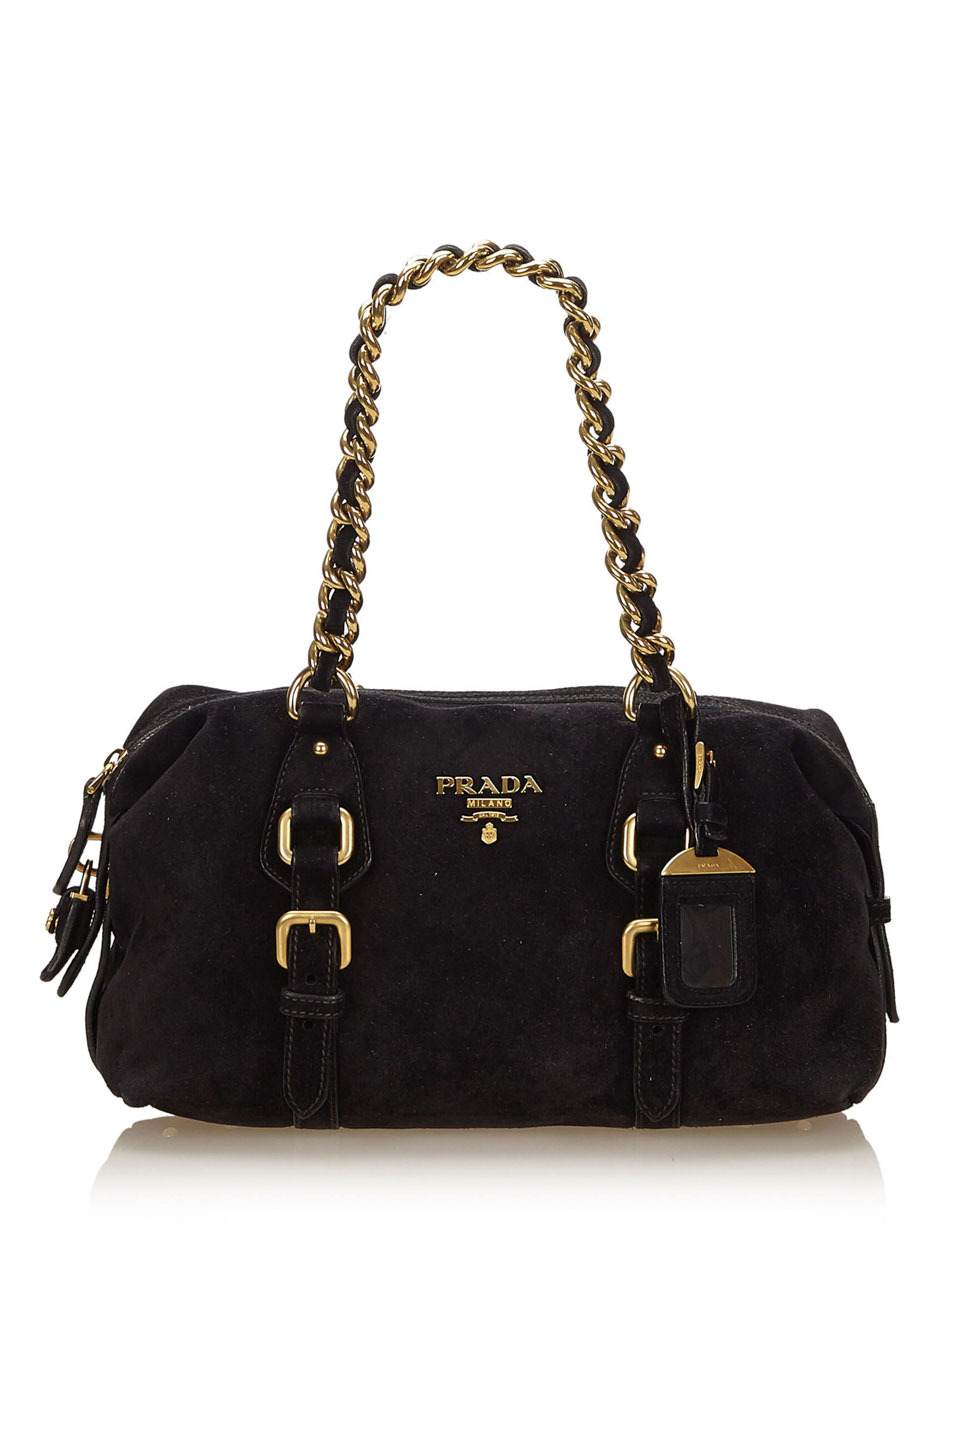 PRADA SUEDE SHOULDER BAG IN BLACK